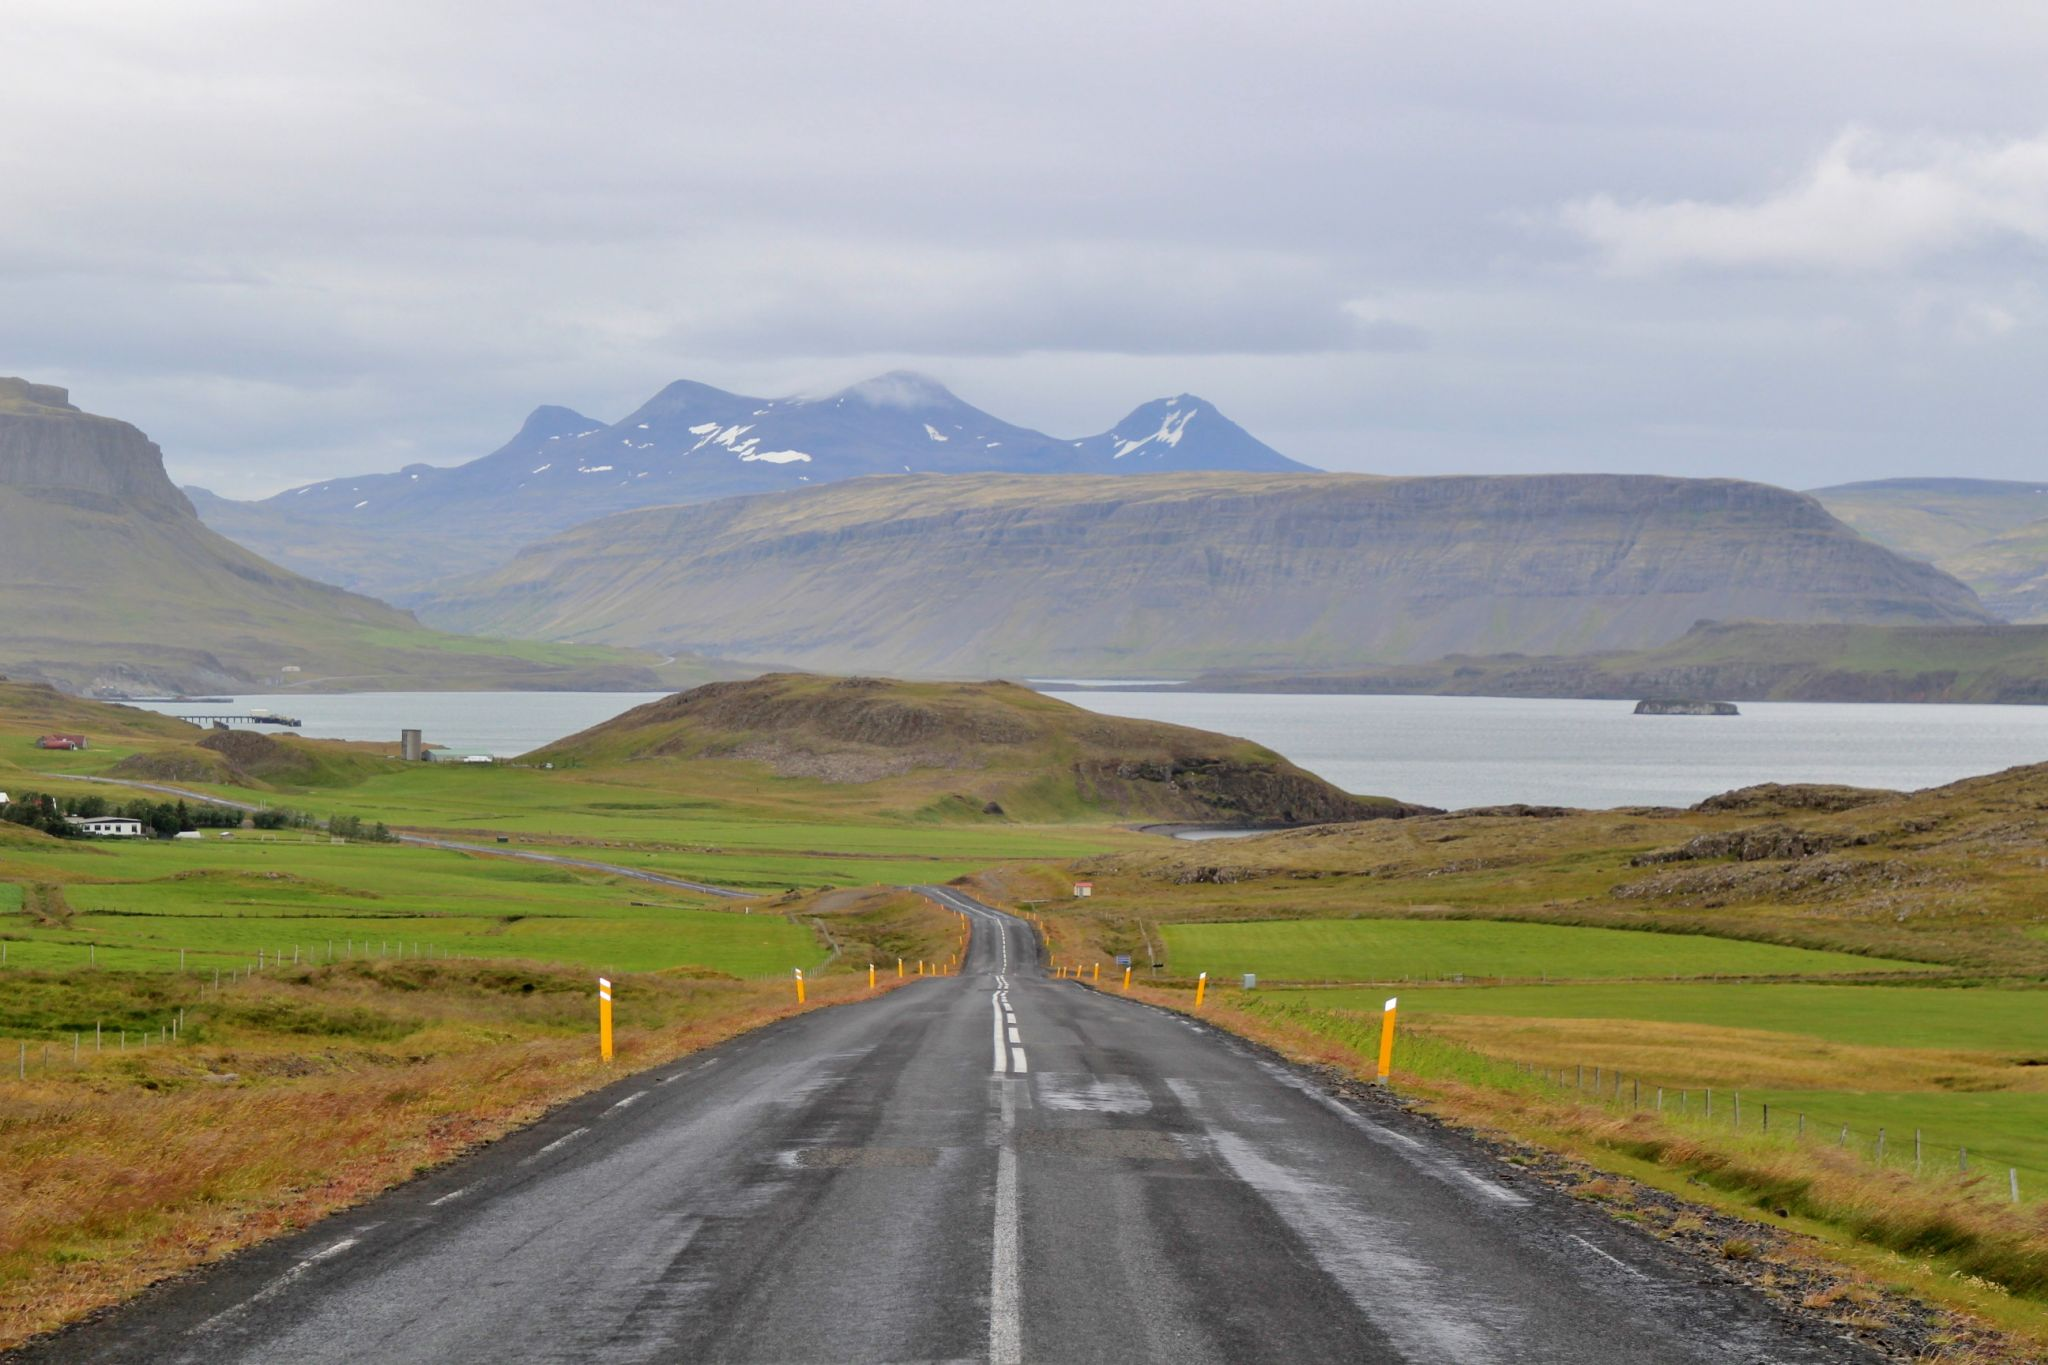 Road view, Iceland